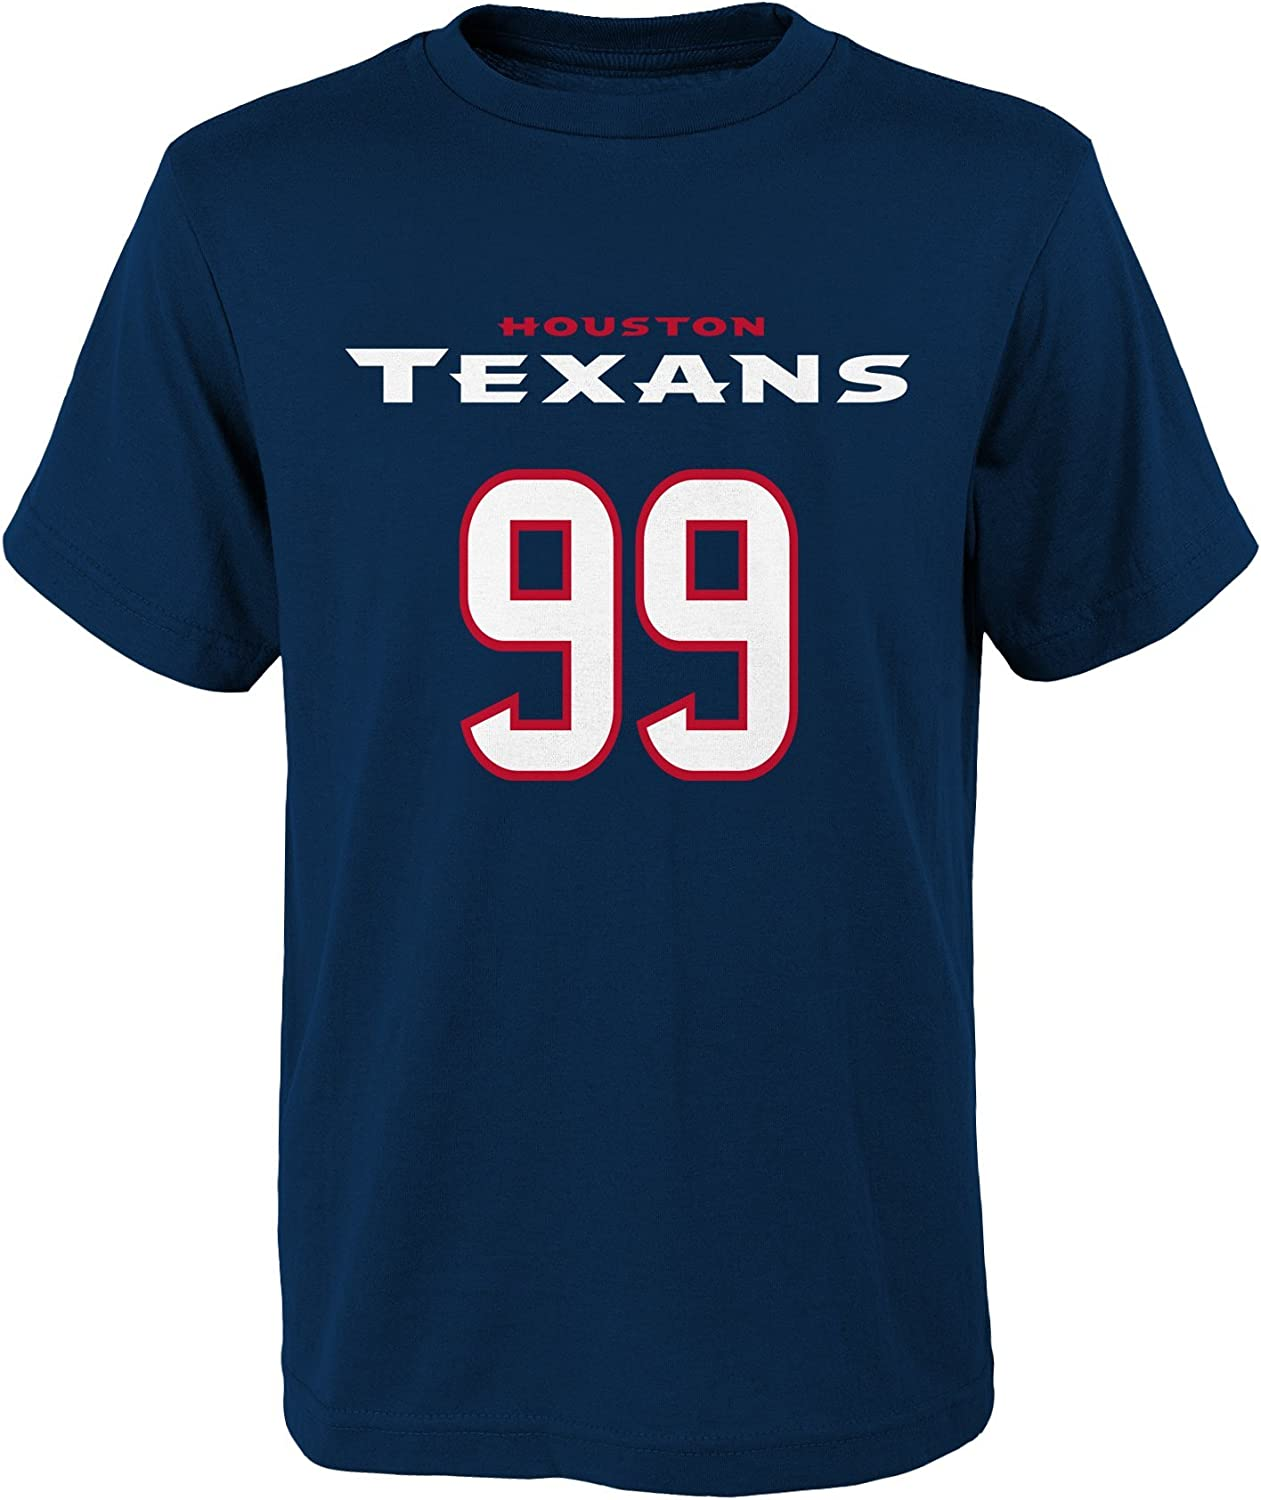 B00XLUYMF0 Outerstuff NFL J.J. Watt # 99 Youth Boys 8-20 Name & Number Short Sleeve Tee 71aanRlttVL